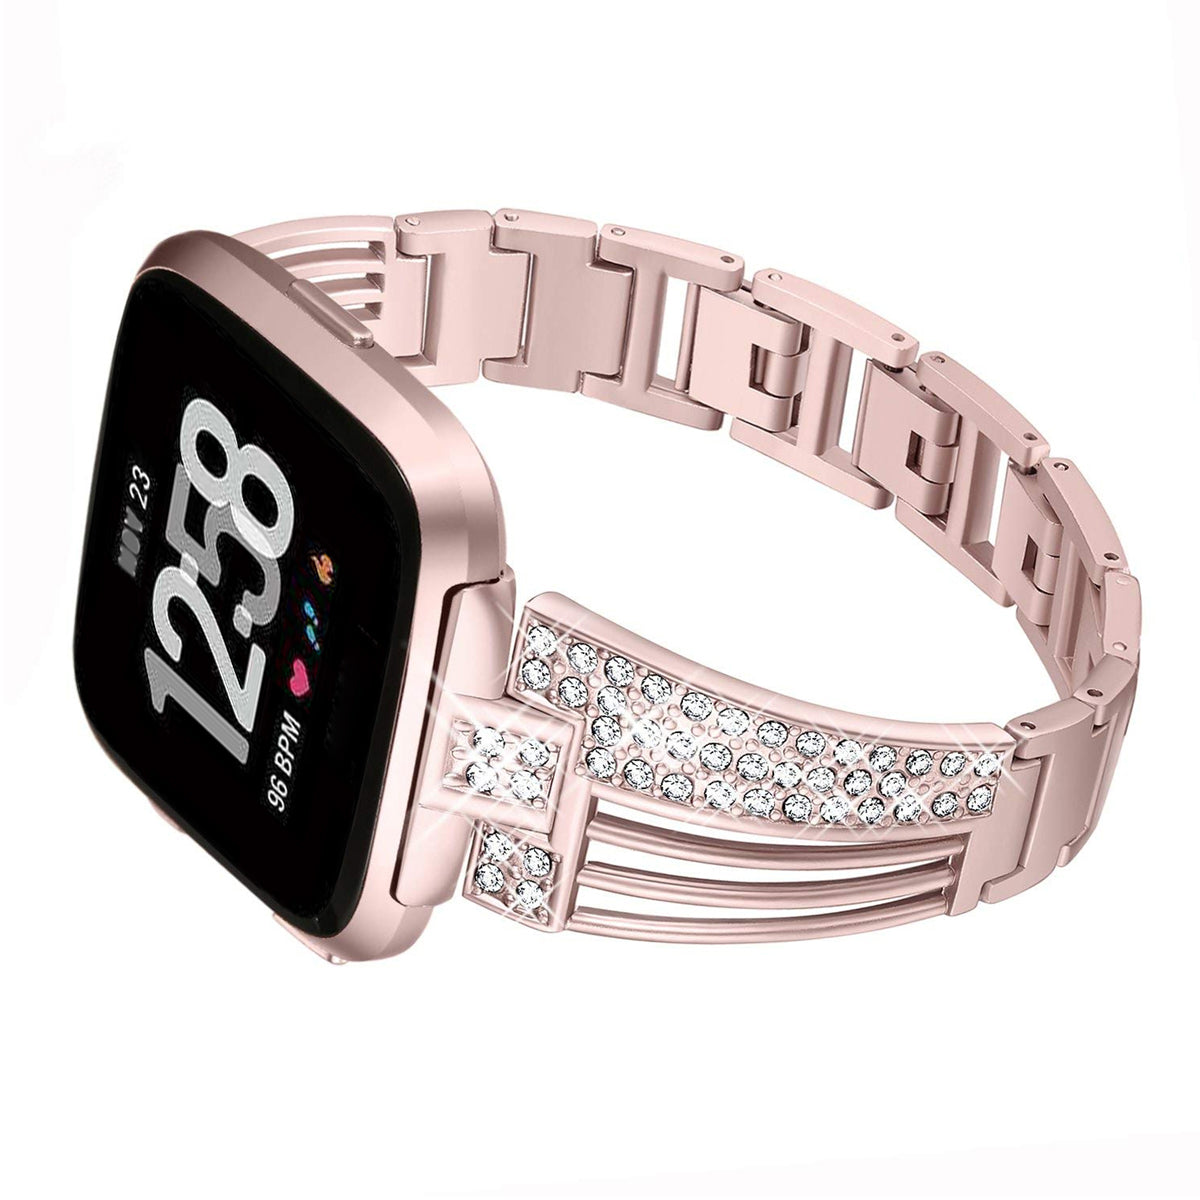 Fitbit Versa Replacement Watch Bracelet Band Strap Wristband For Fitbit Versa Smart Watch